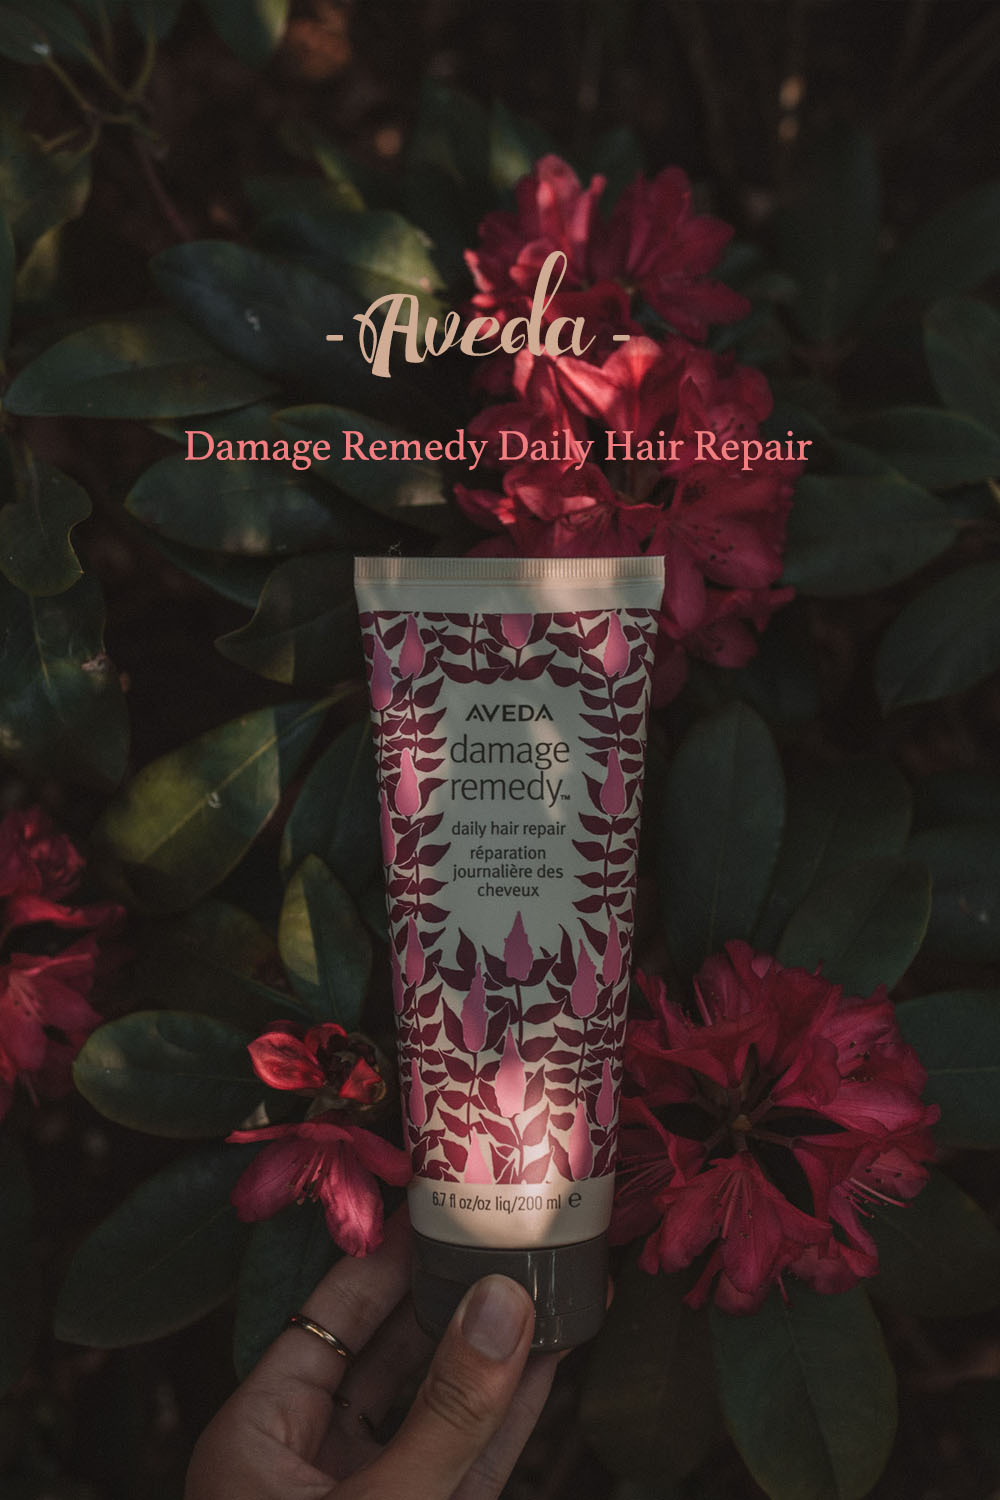 Aveda damage remedy daily hair repair limited edition